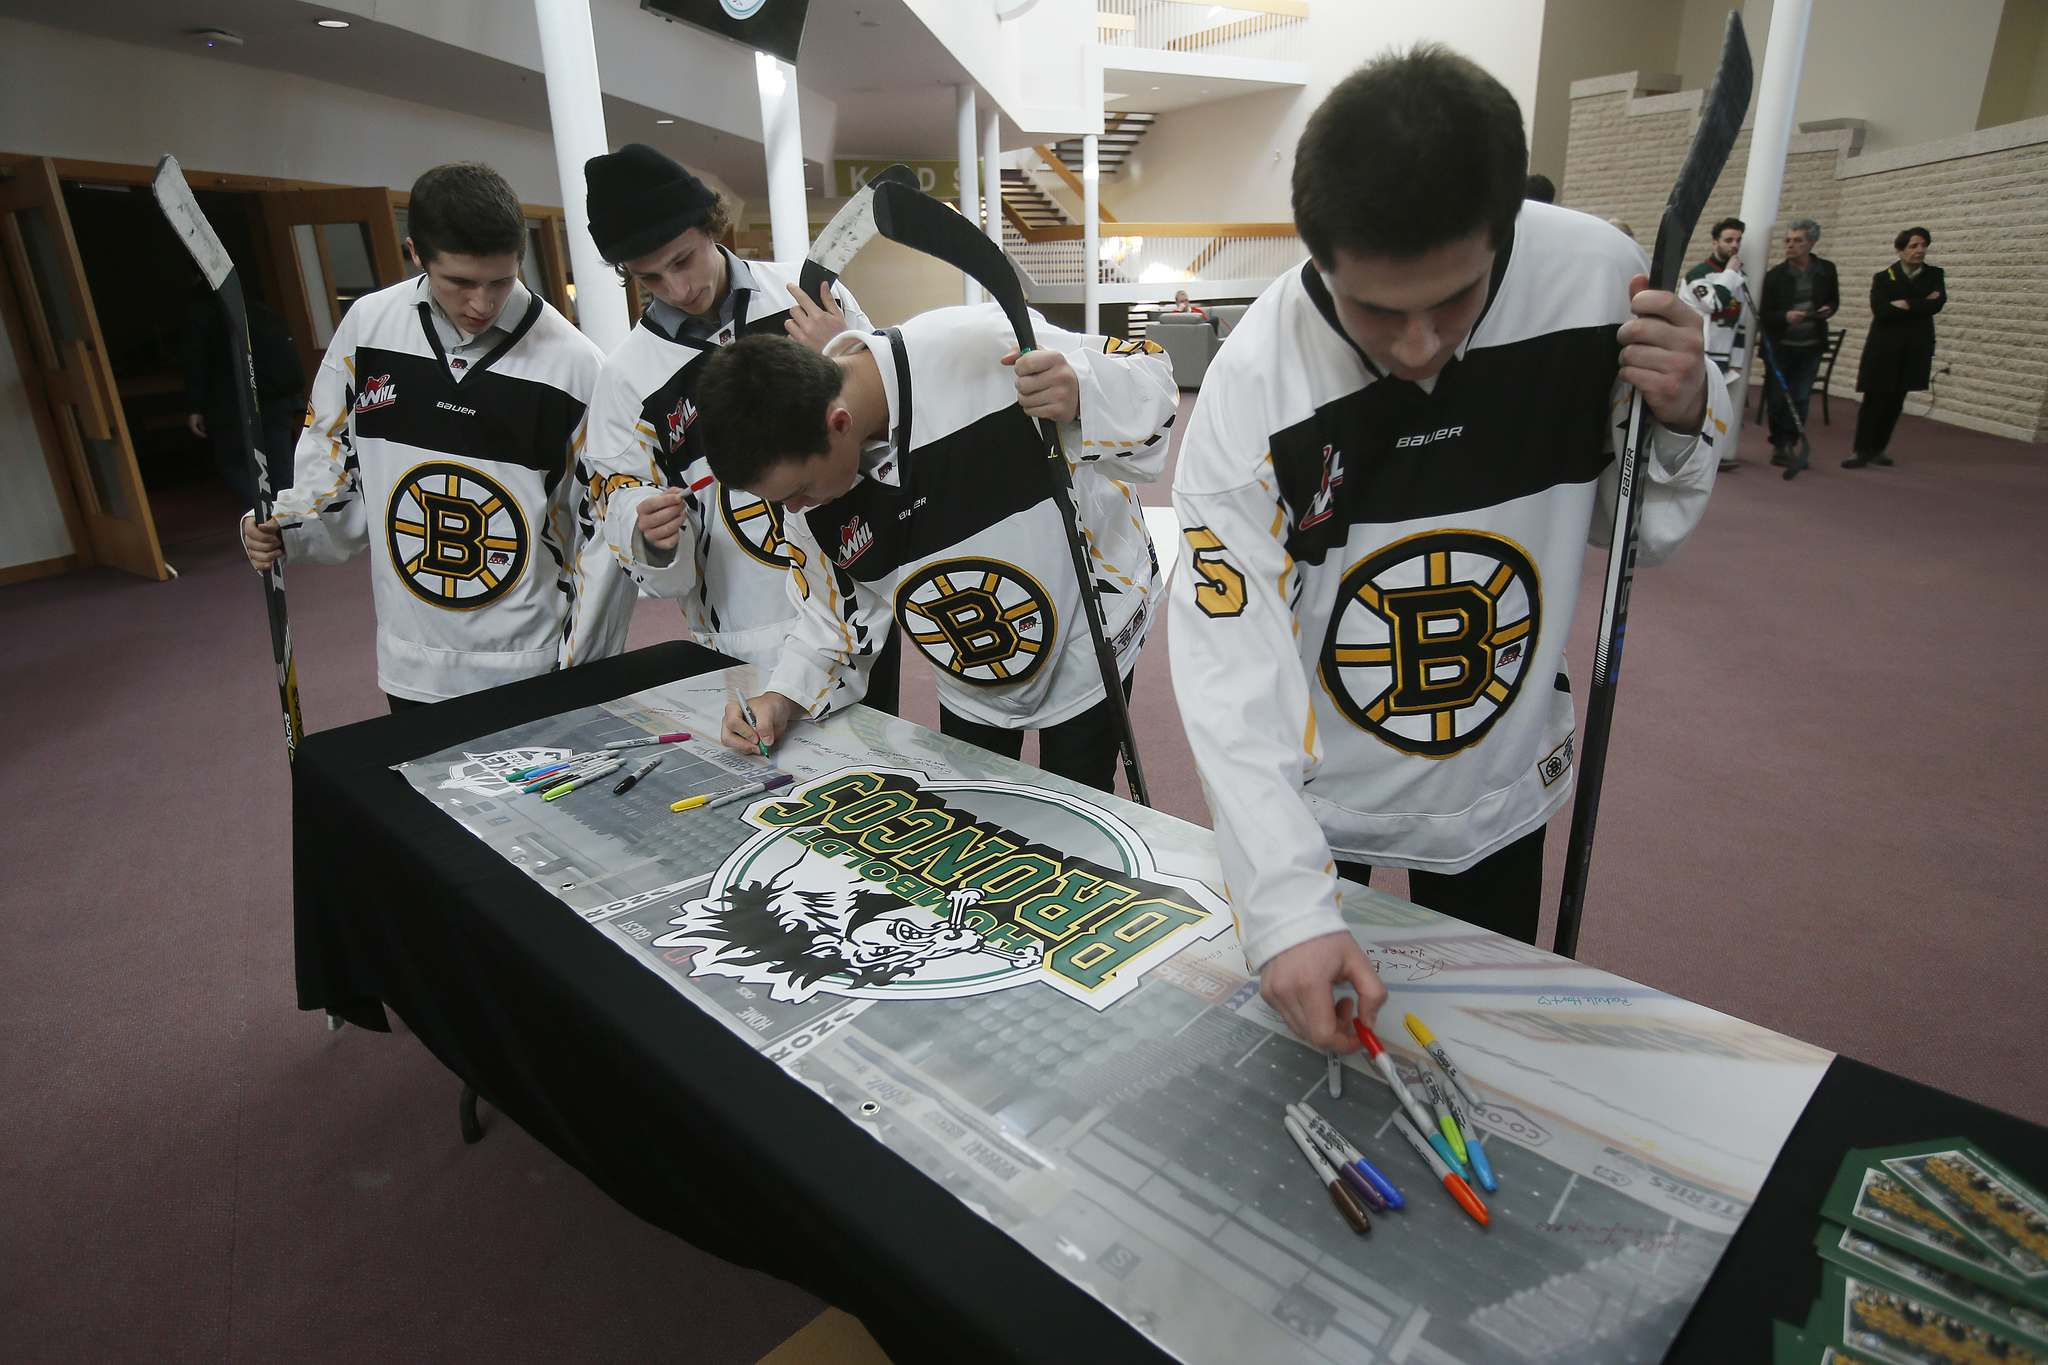 JOHN WOODS / WINNIPEG FREE PRESS</p><p>Players sign a banner at a Manitoba Hockey vigil for the Humboldt Broncos at My Church in Winnipeg Monday.</p>